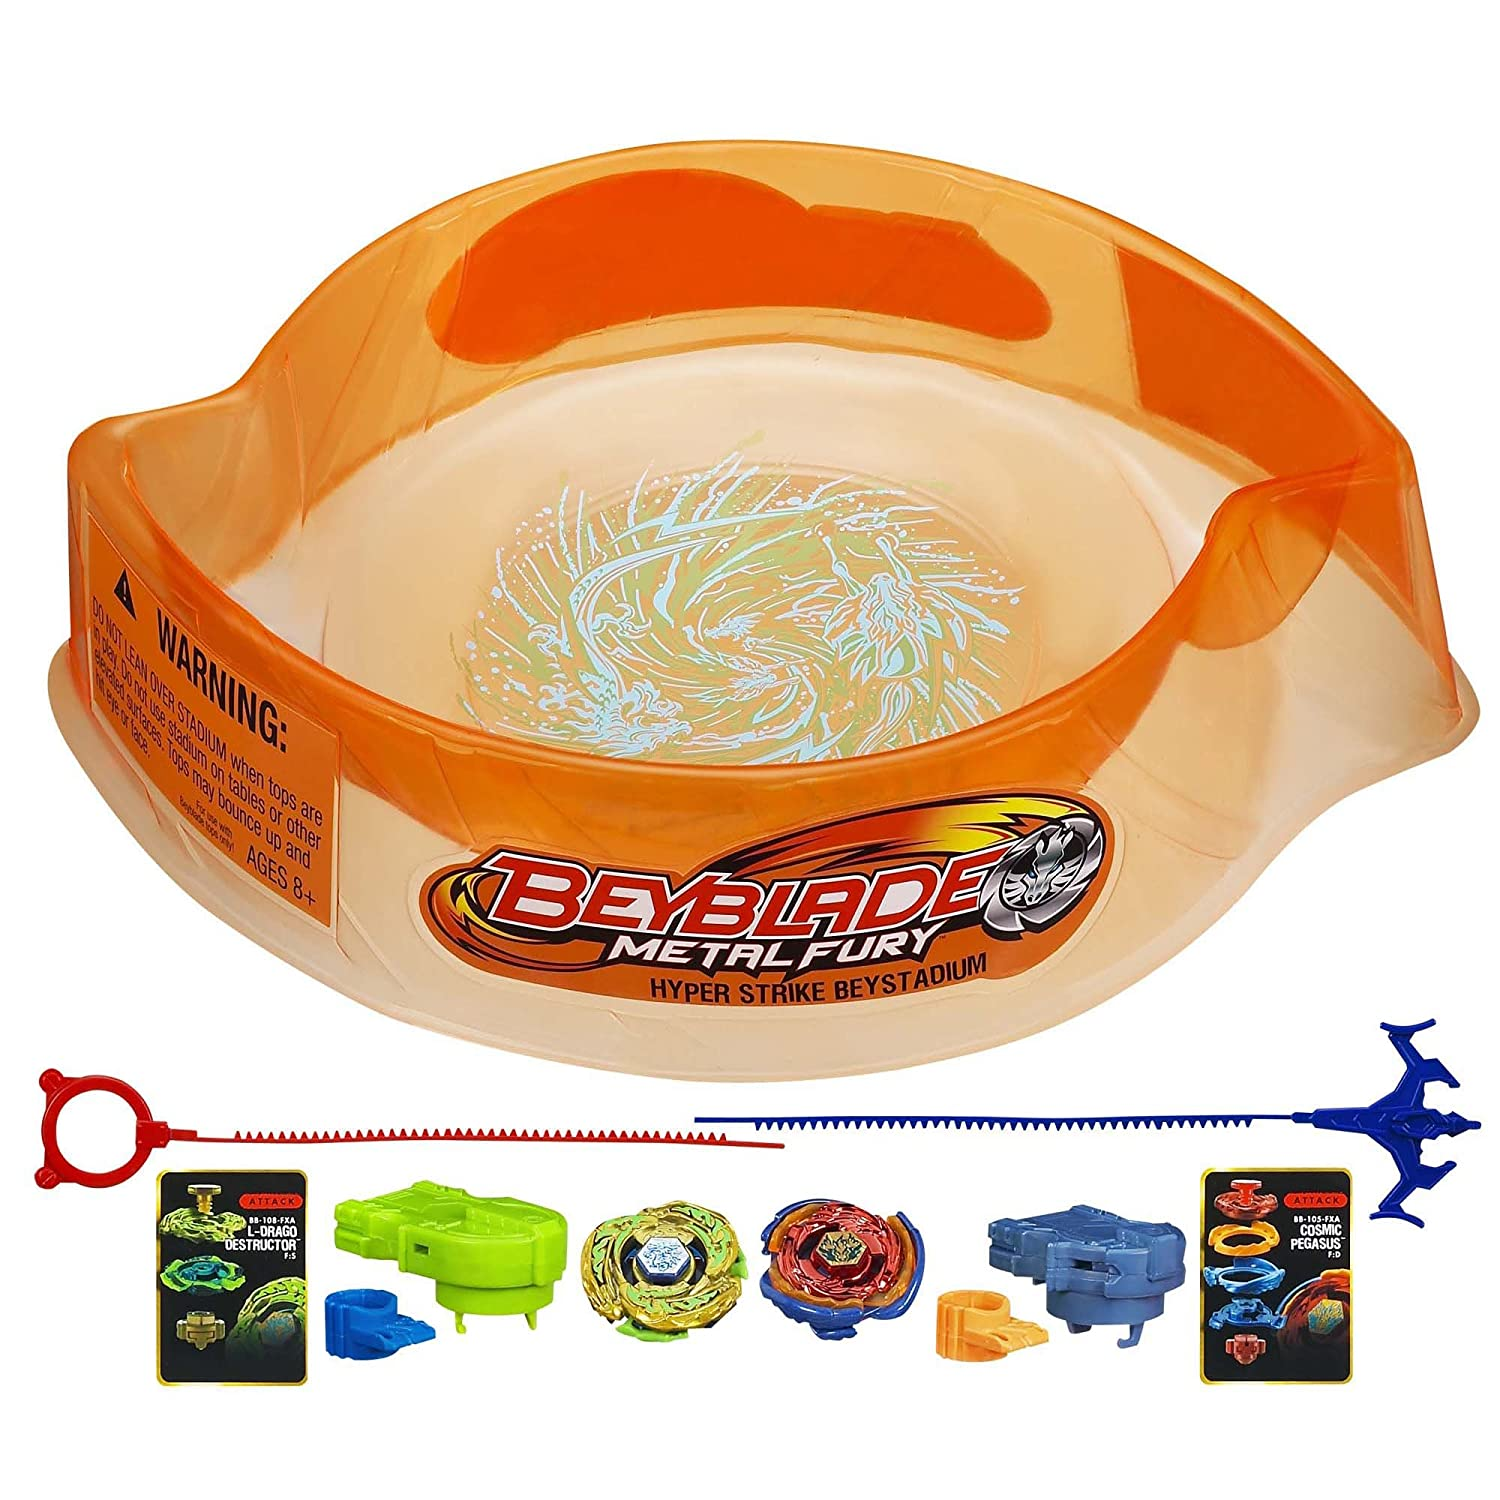 Beyblade Metal Fury Hyperblades Hyper-Strike Battle Set Hasbro A1778